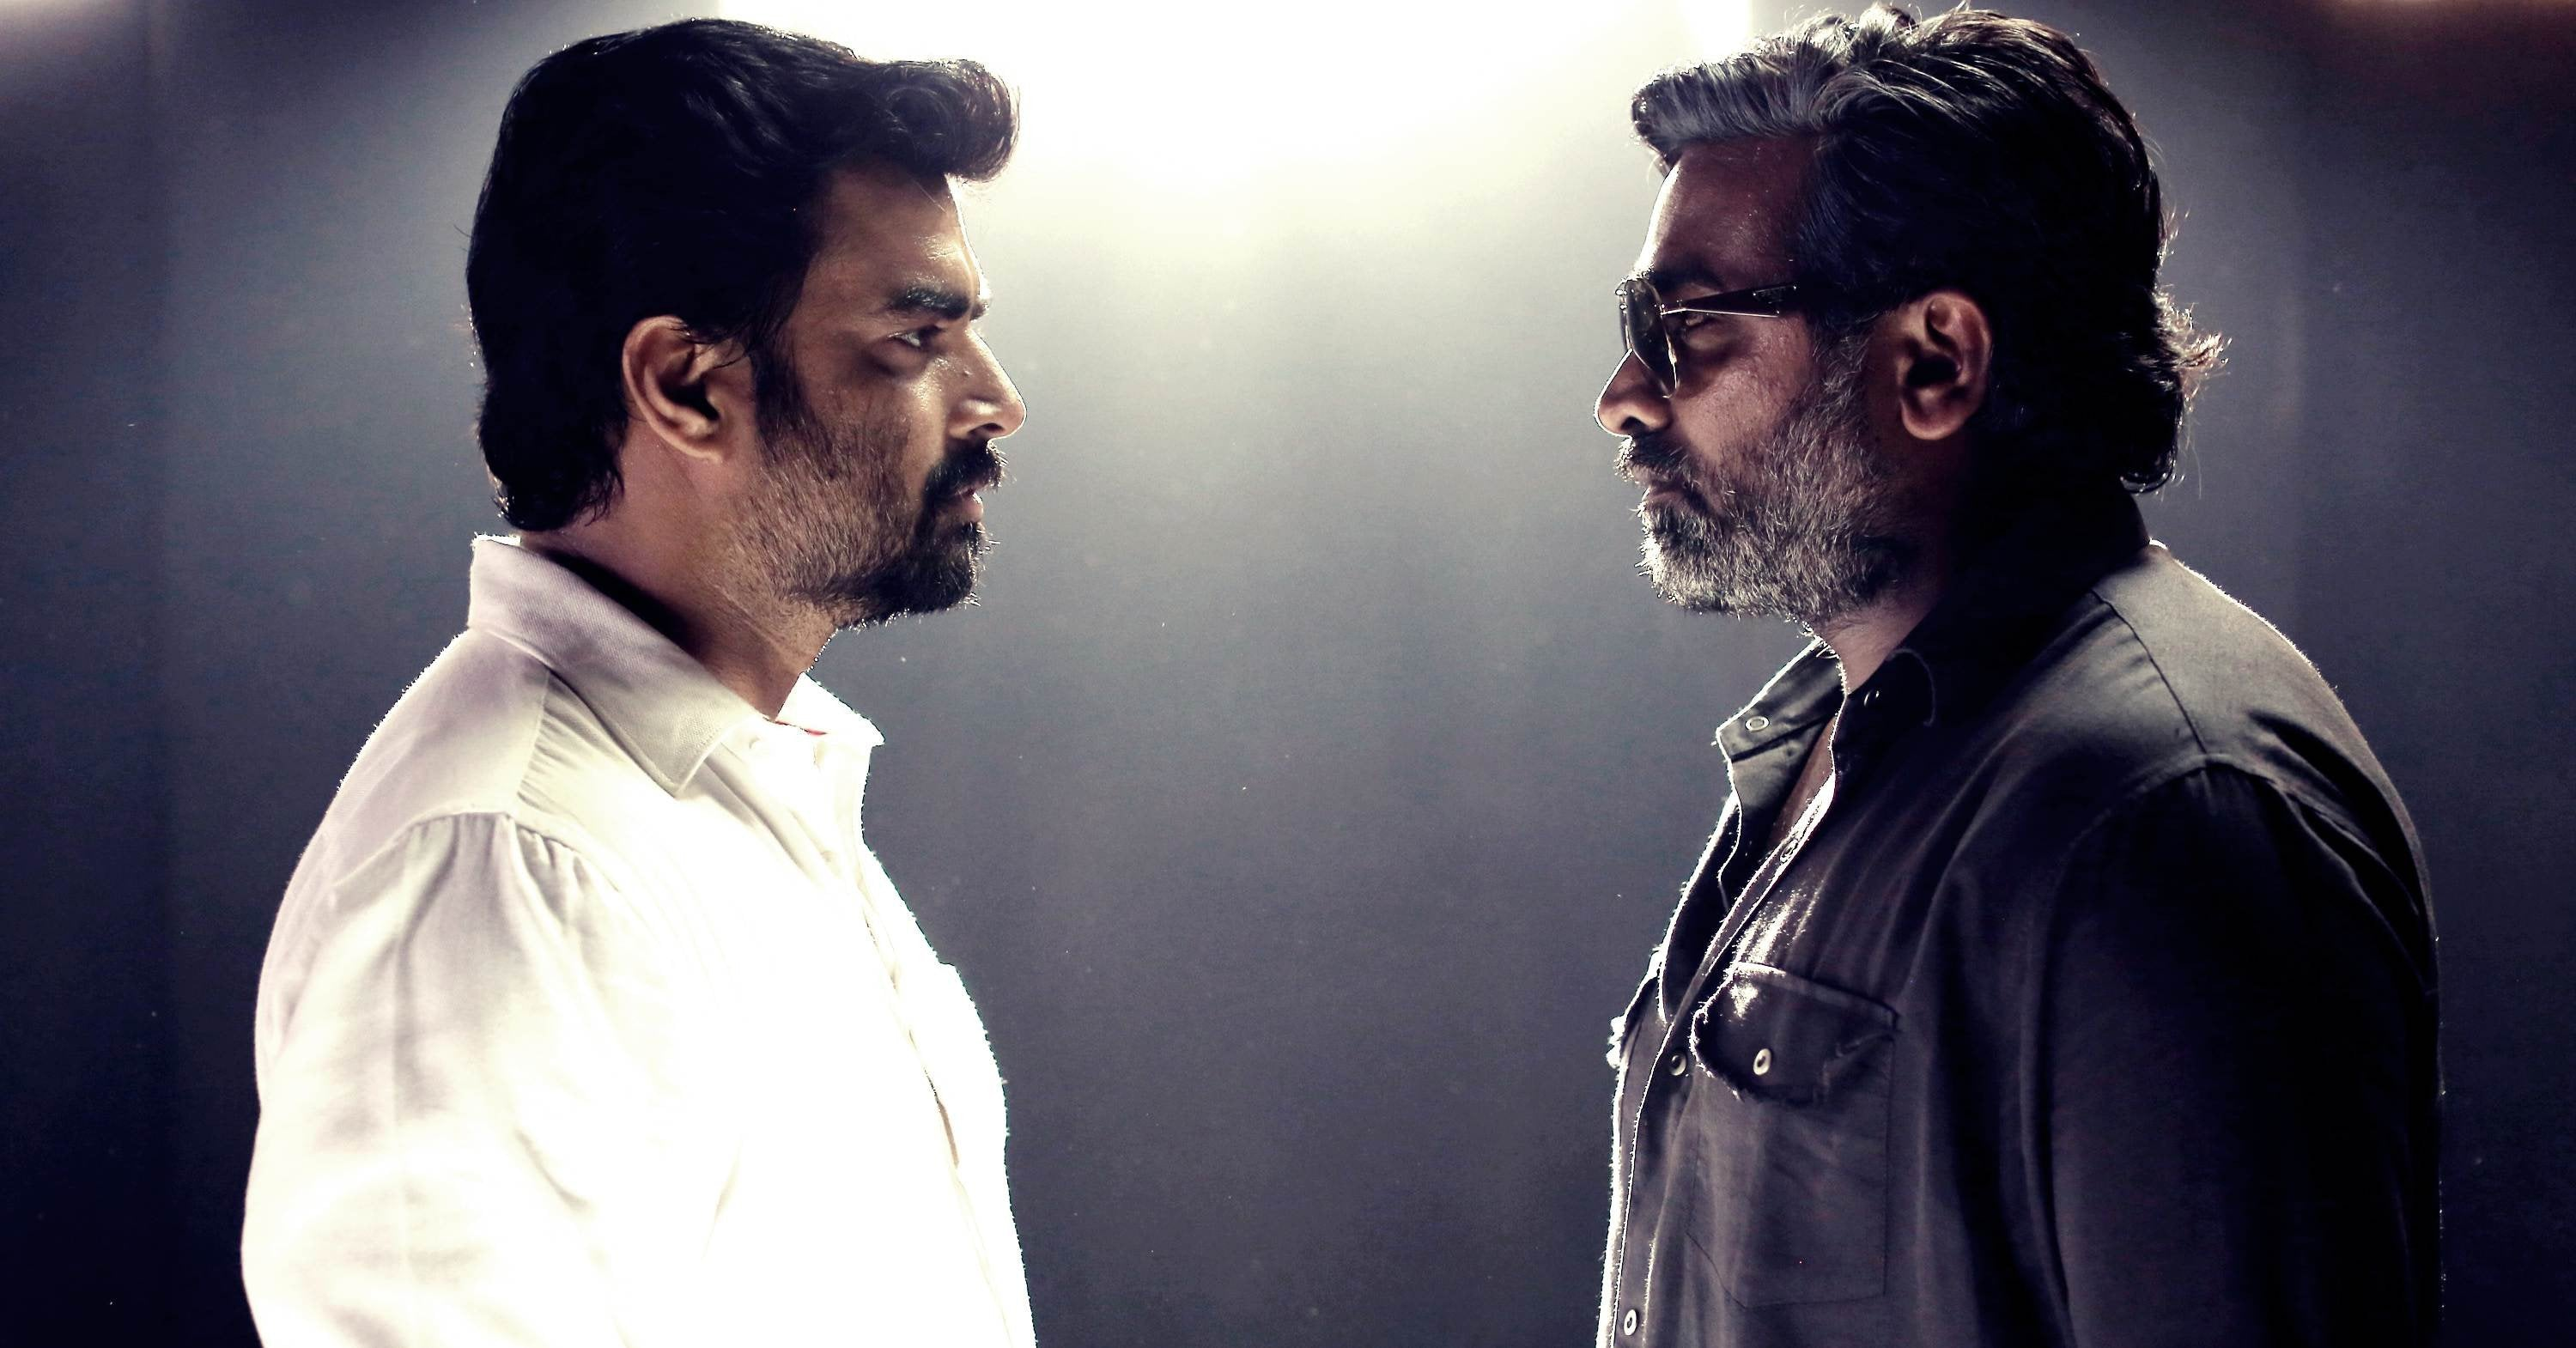 VIKRAM VEDHA: The Anatomy of a Carefully Crafted Story